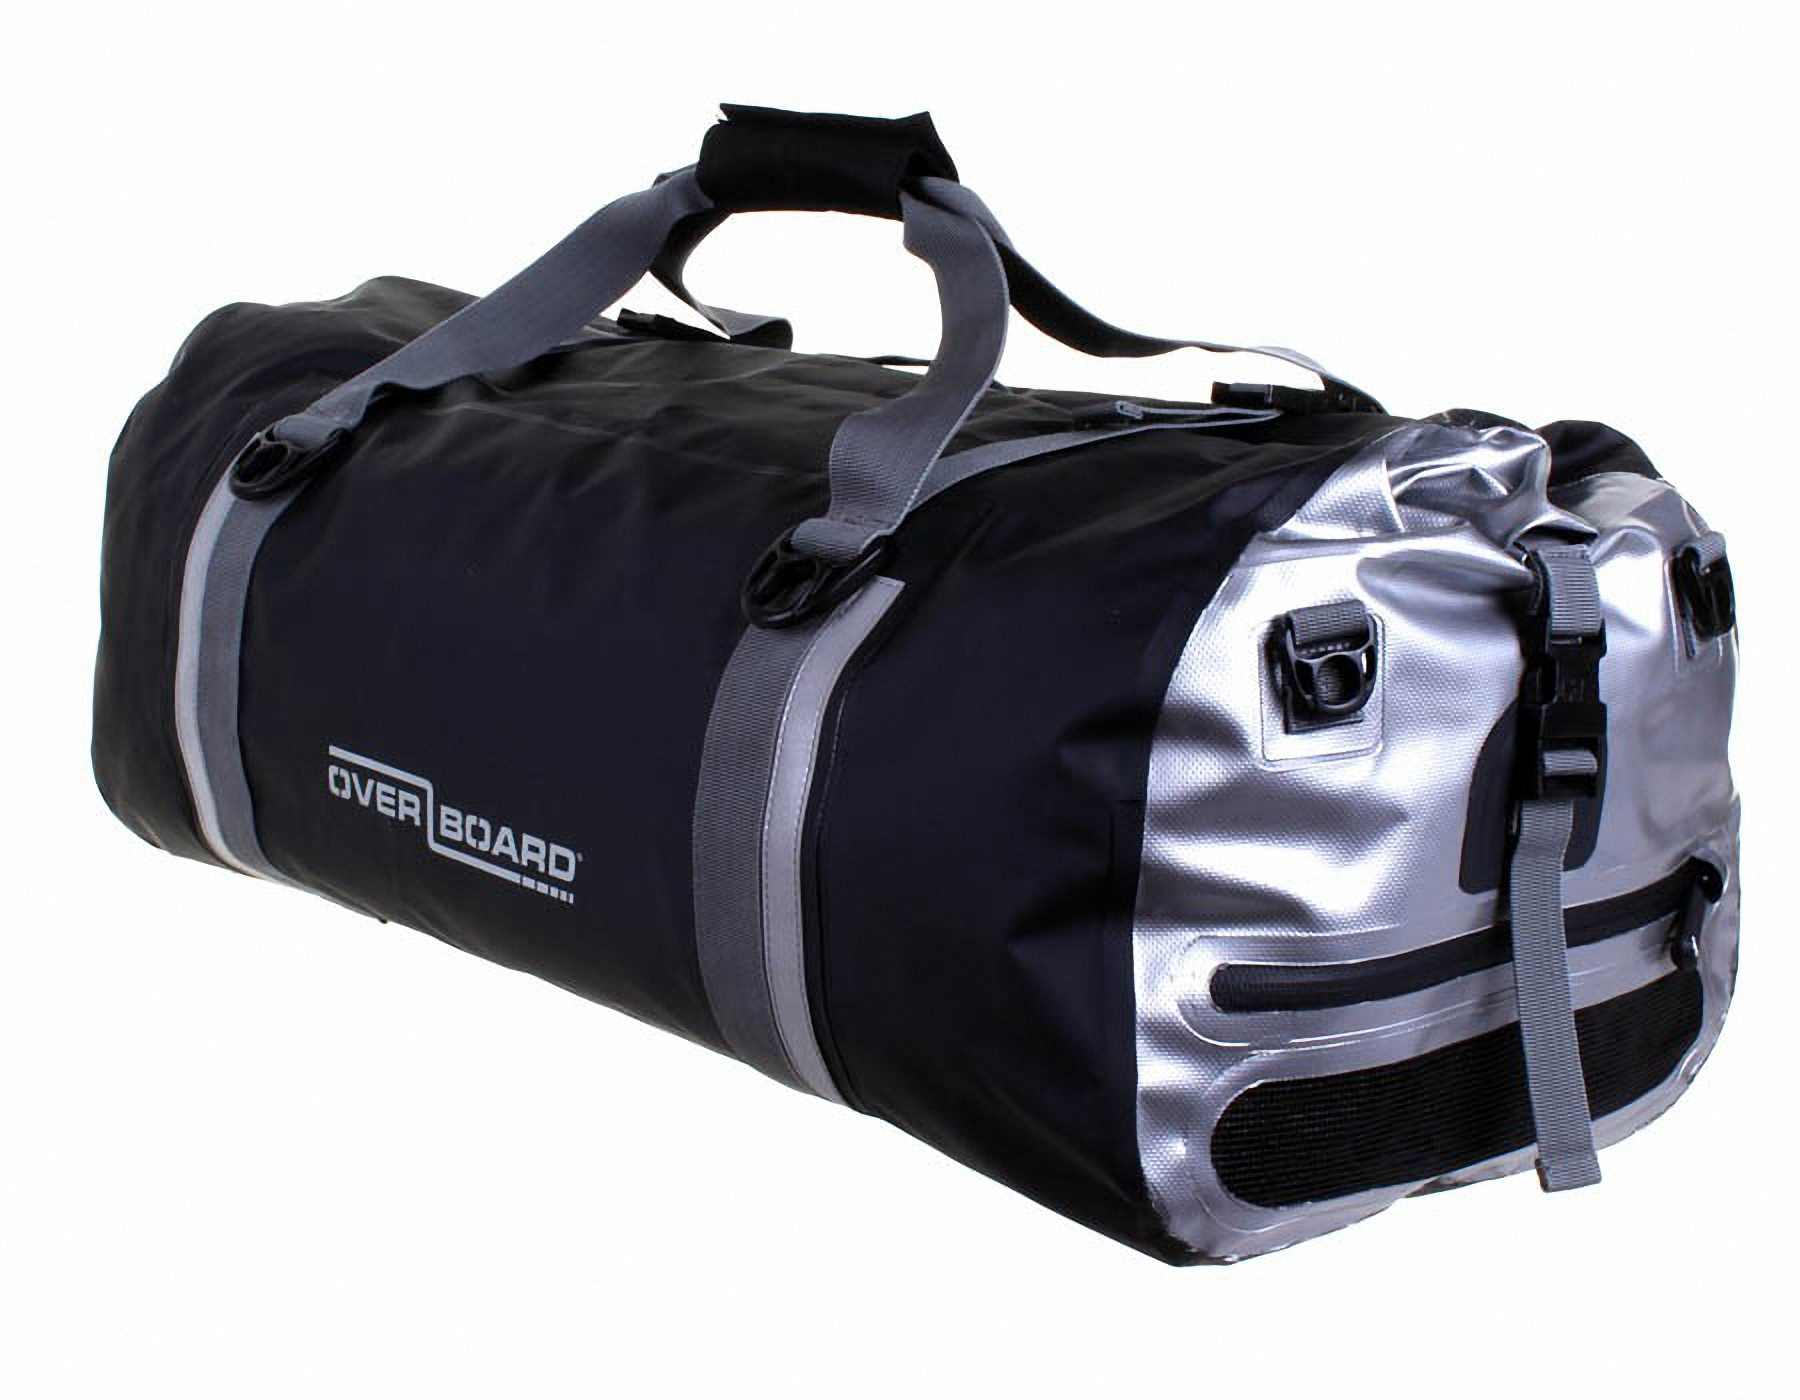 Водонепроницаемая сумка OverBoard OB1154BLK - Pro-Sports Waterproof Duffel Bag - 60 литров.  Фото 5